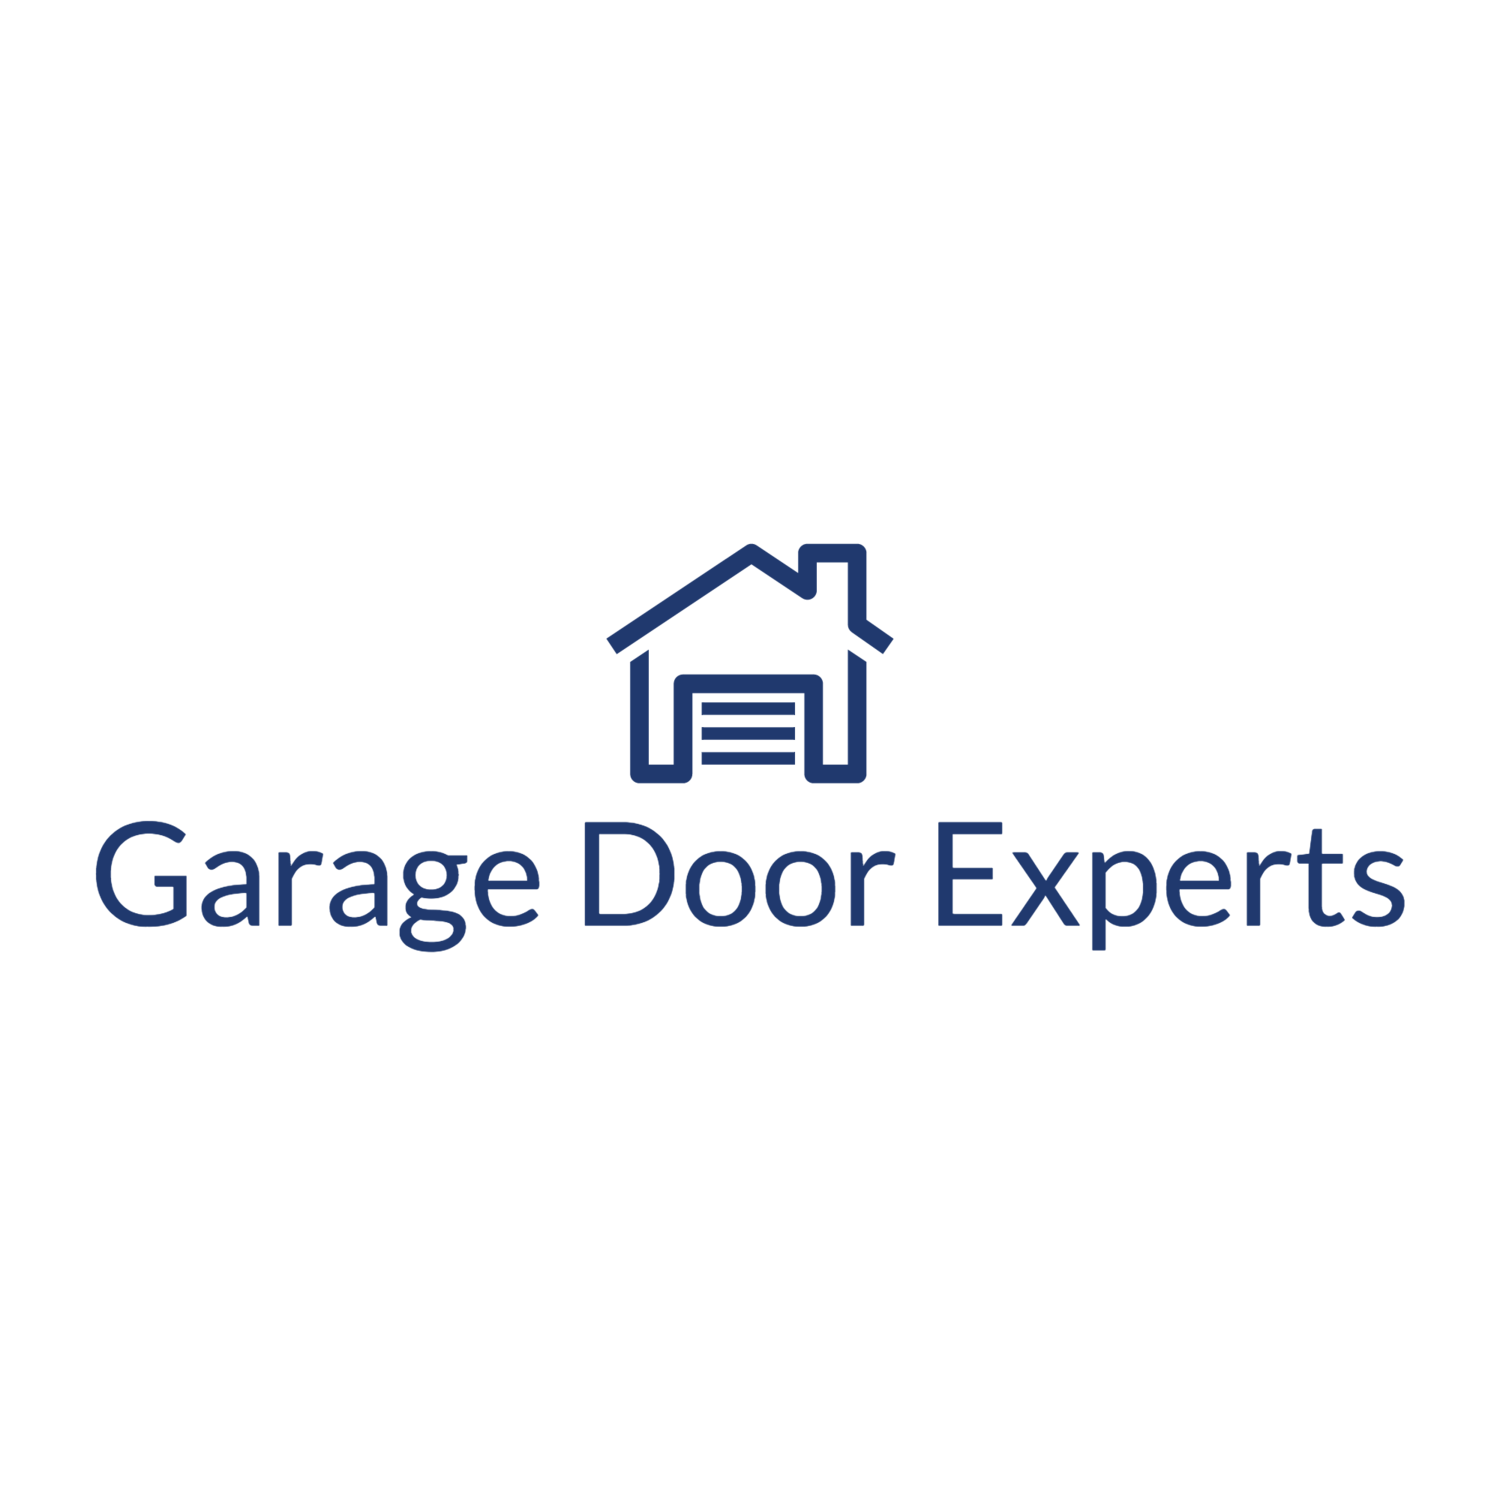 Garage door experts for Dublin garage door repair